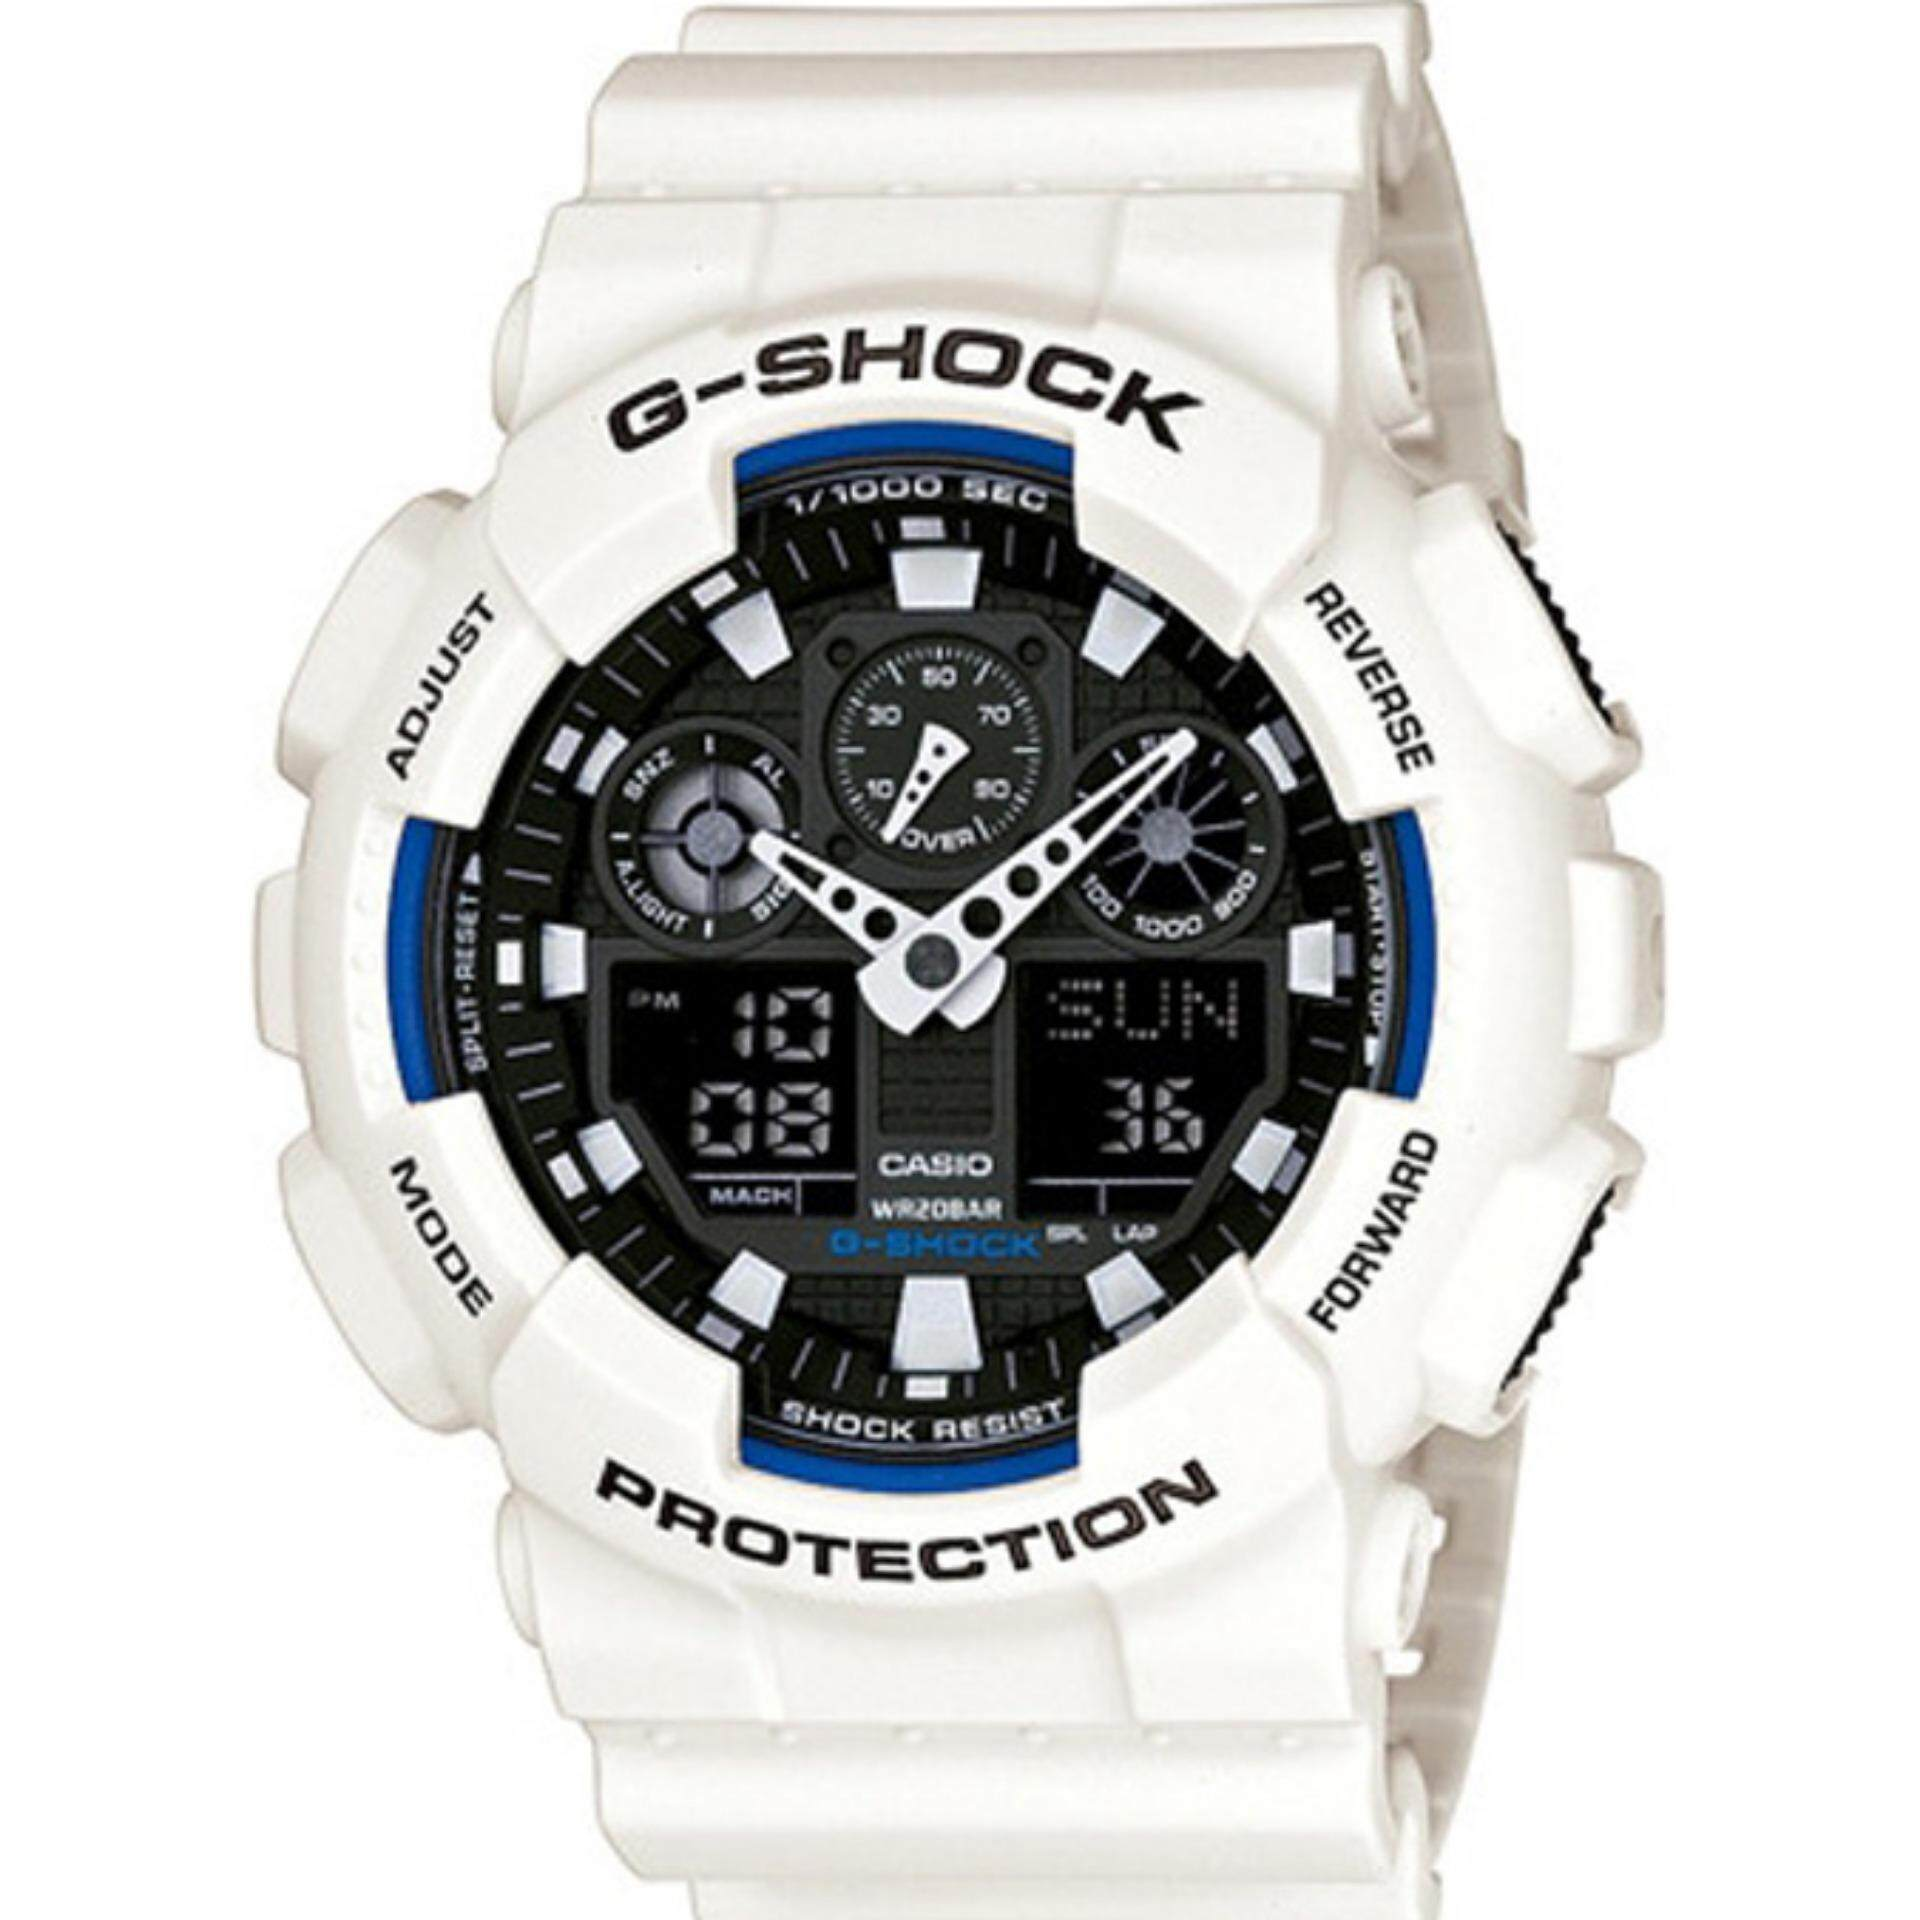 Shop Original Casio G Shock Mens Watches On Lazada My Jam Tangan Pria Sporty Ga 400 1bdr Whie Resin Strap Watch 100b 7a